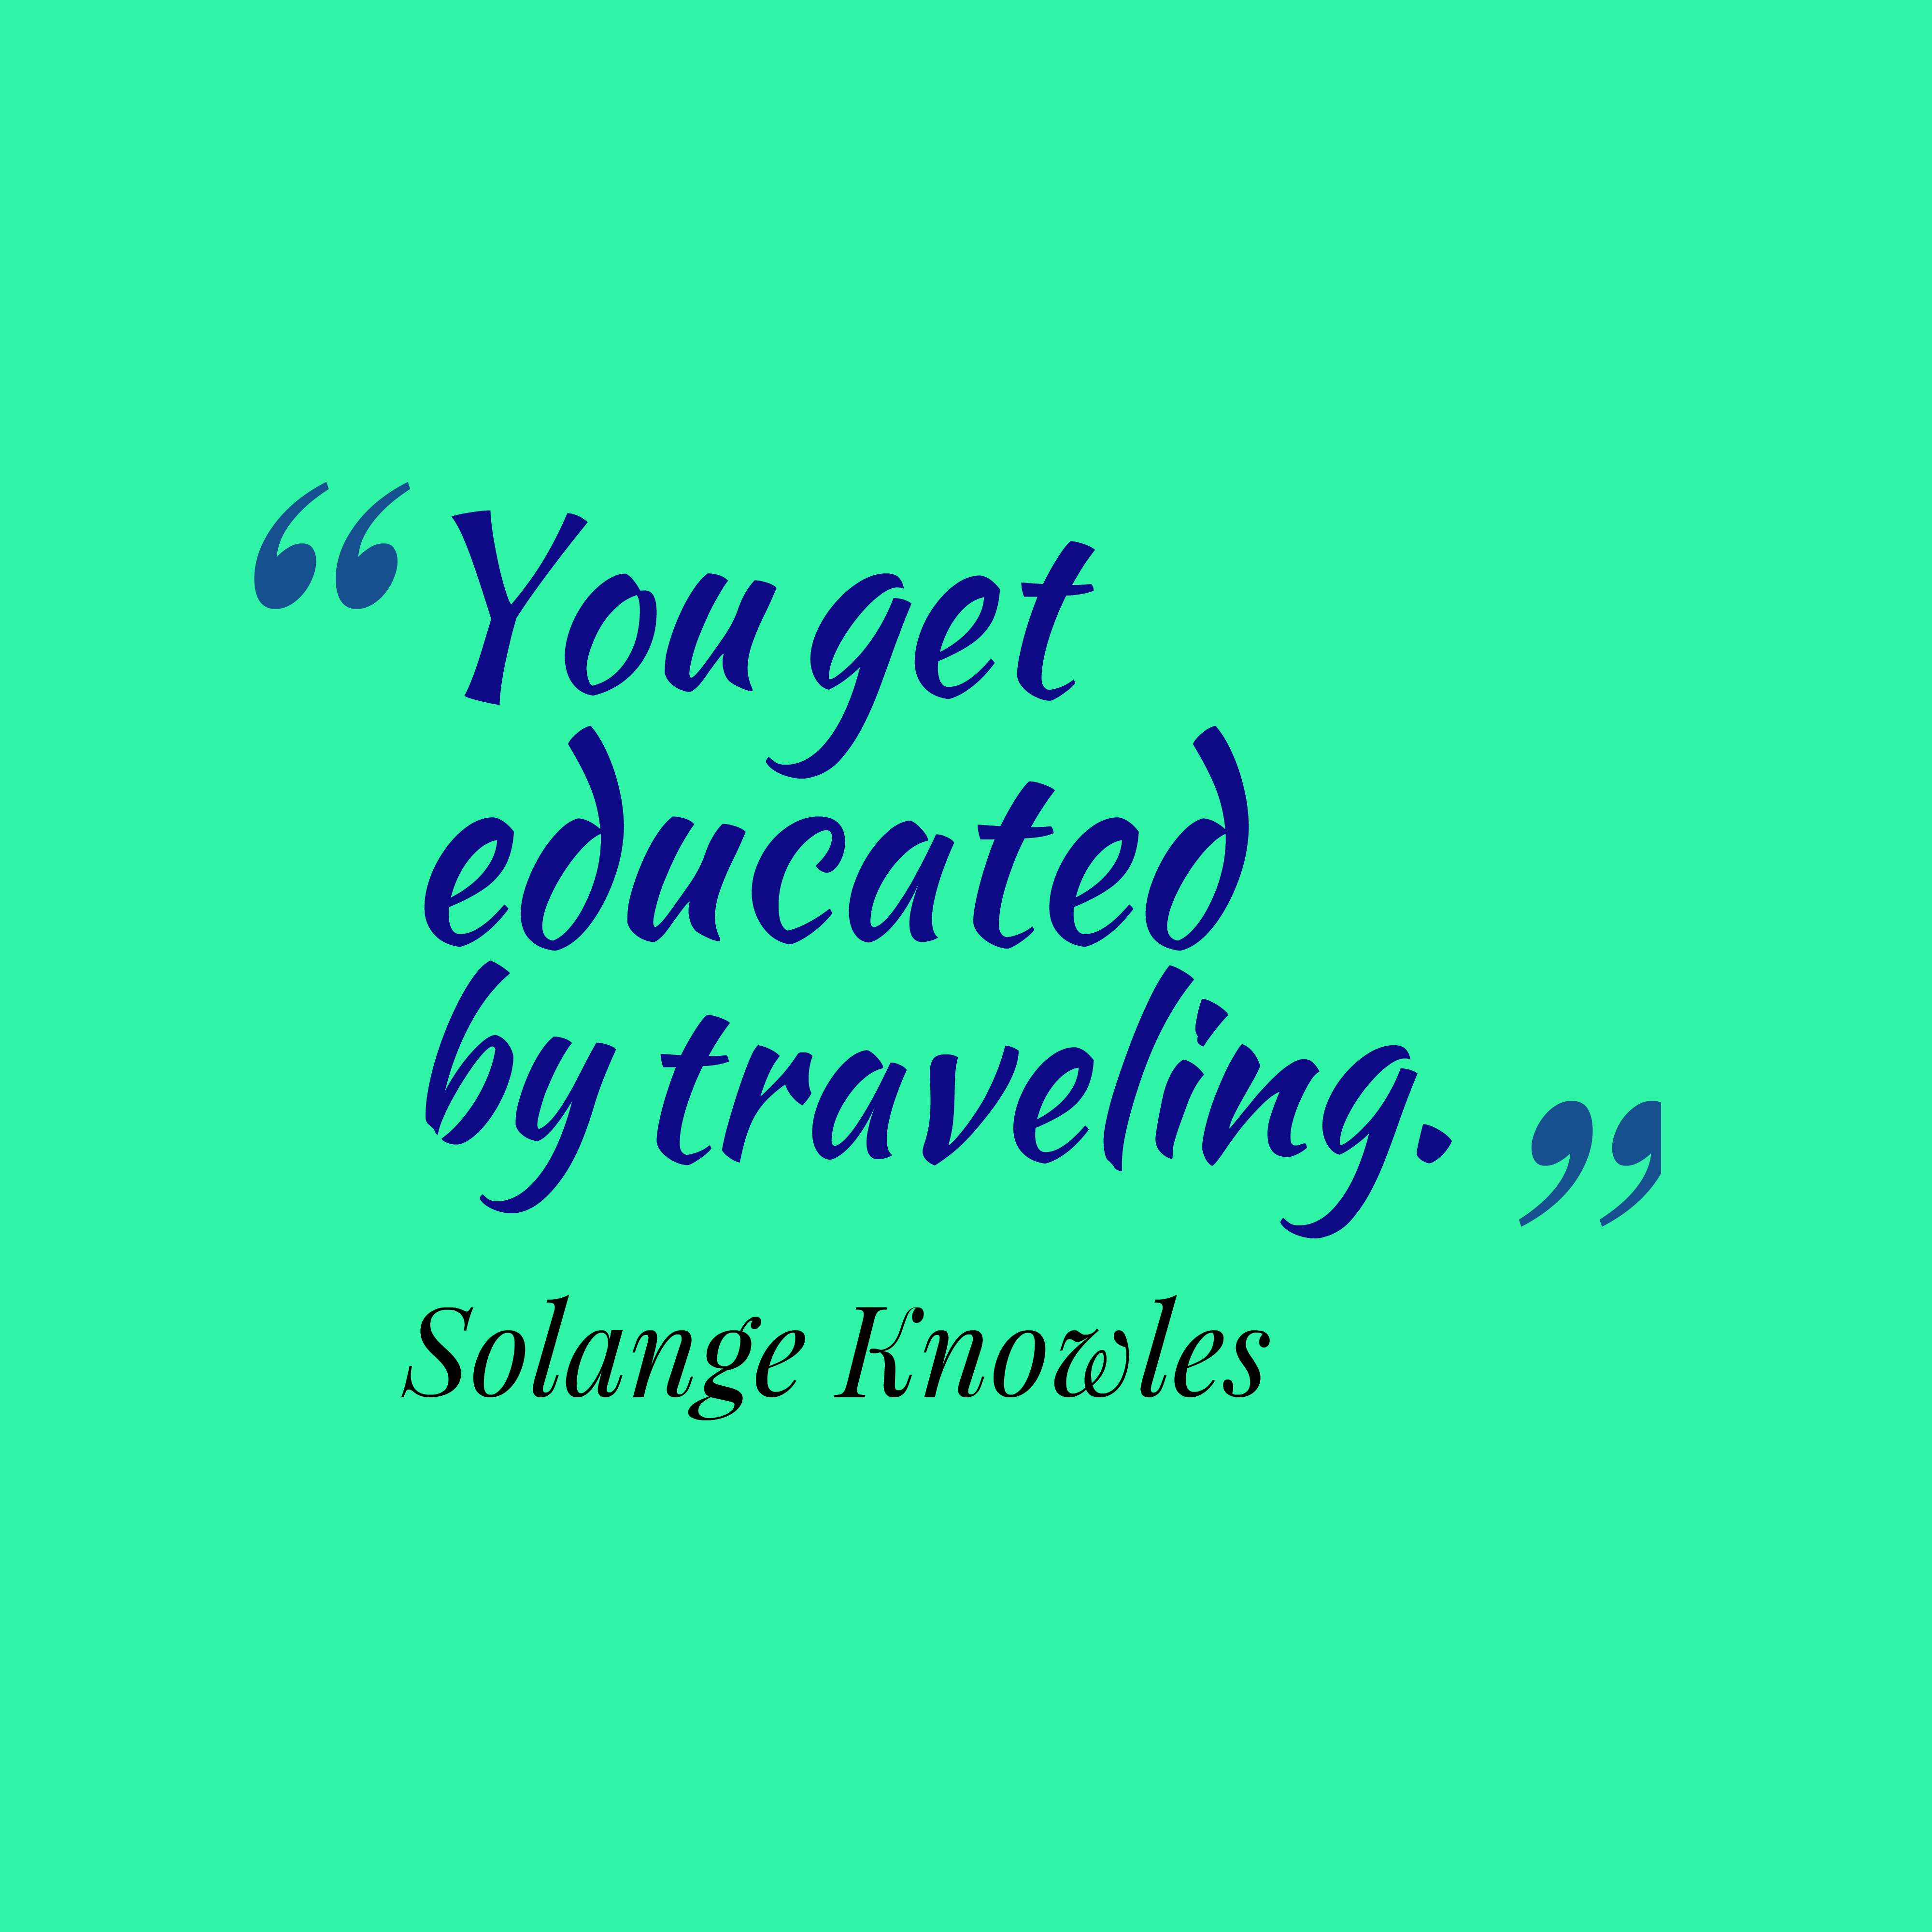 Quotes image of You get educated by traveling.